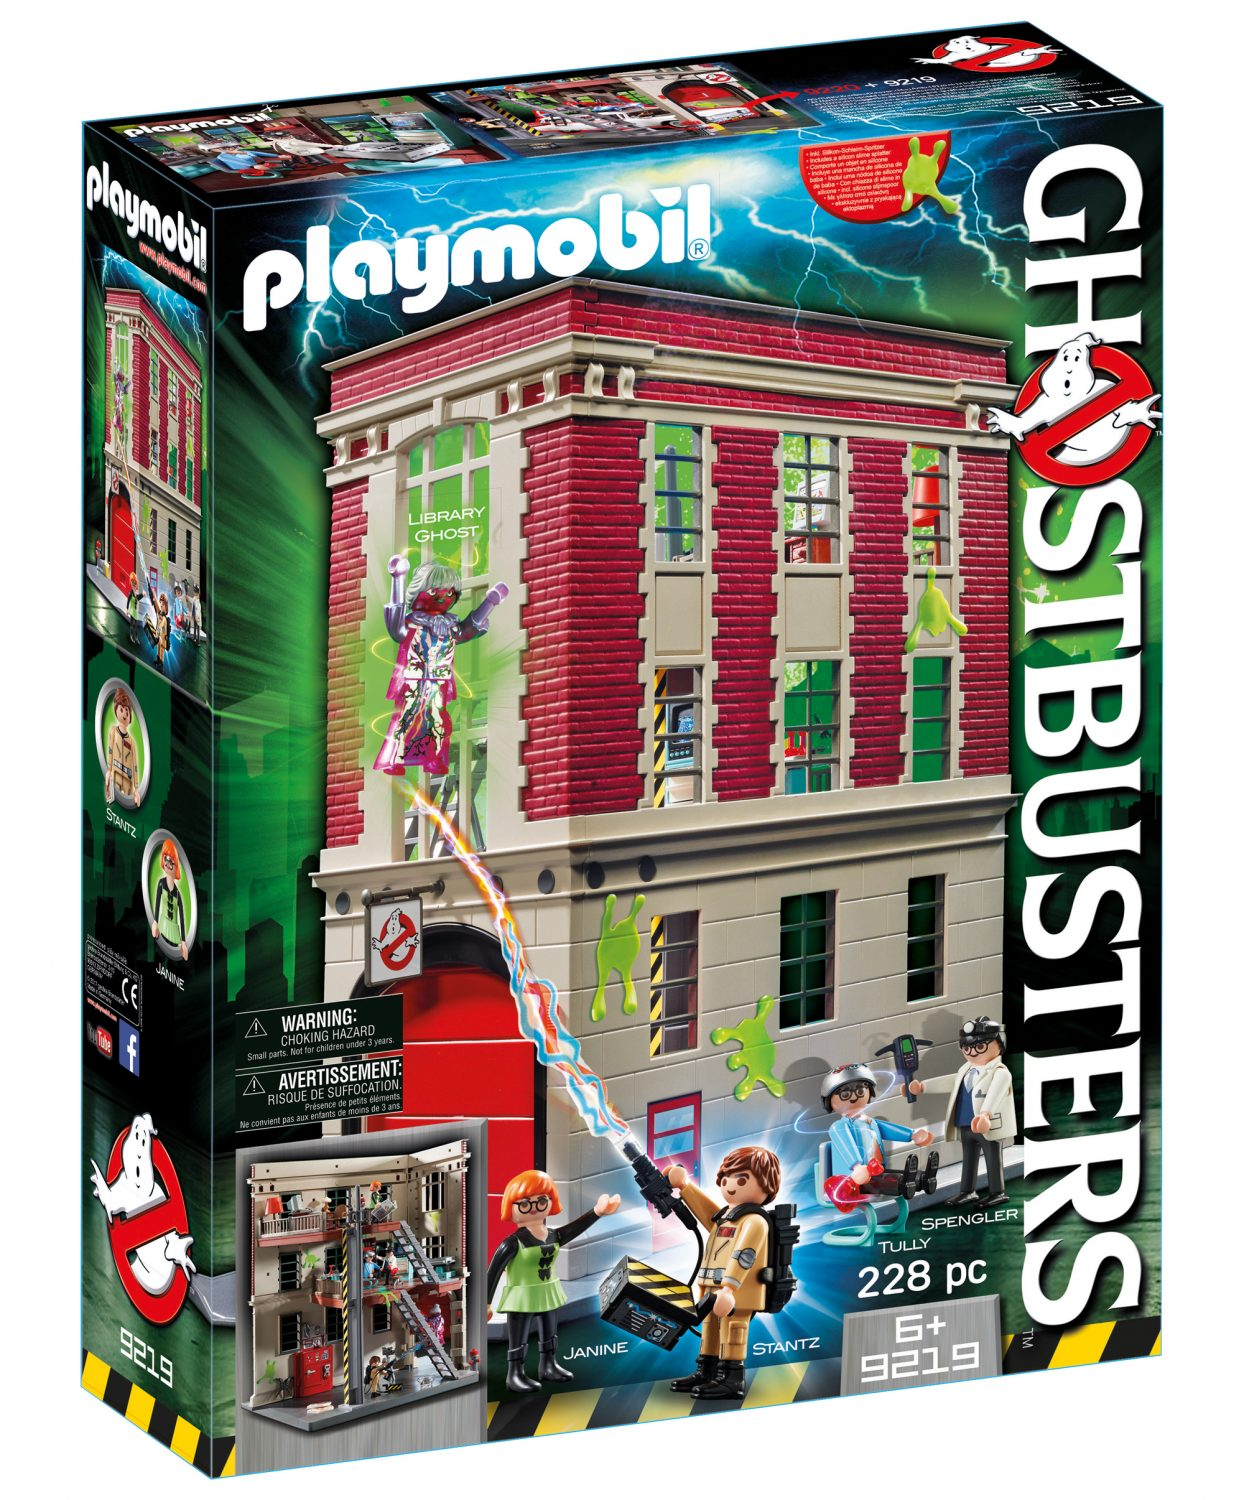 Playmobil Ghostbusters Sets In-Stock Now On Amazon